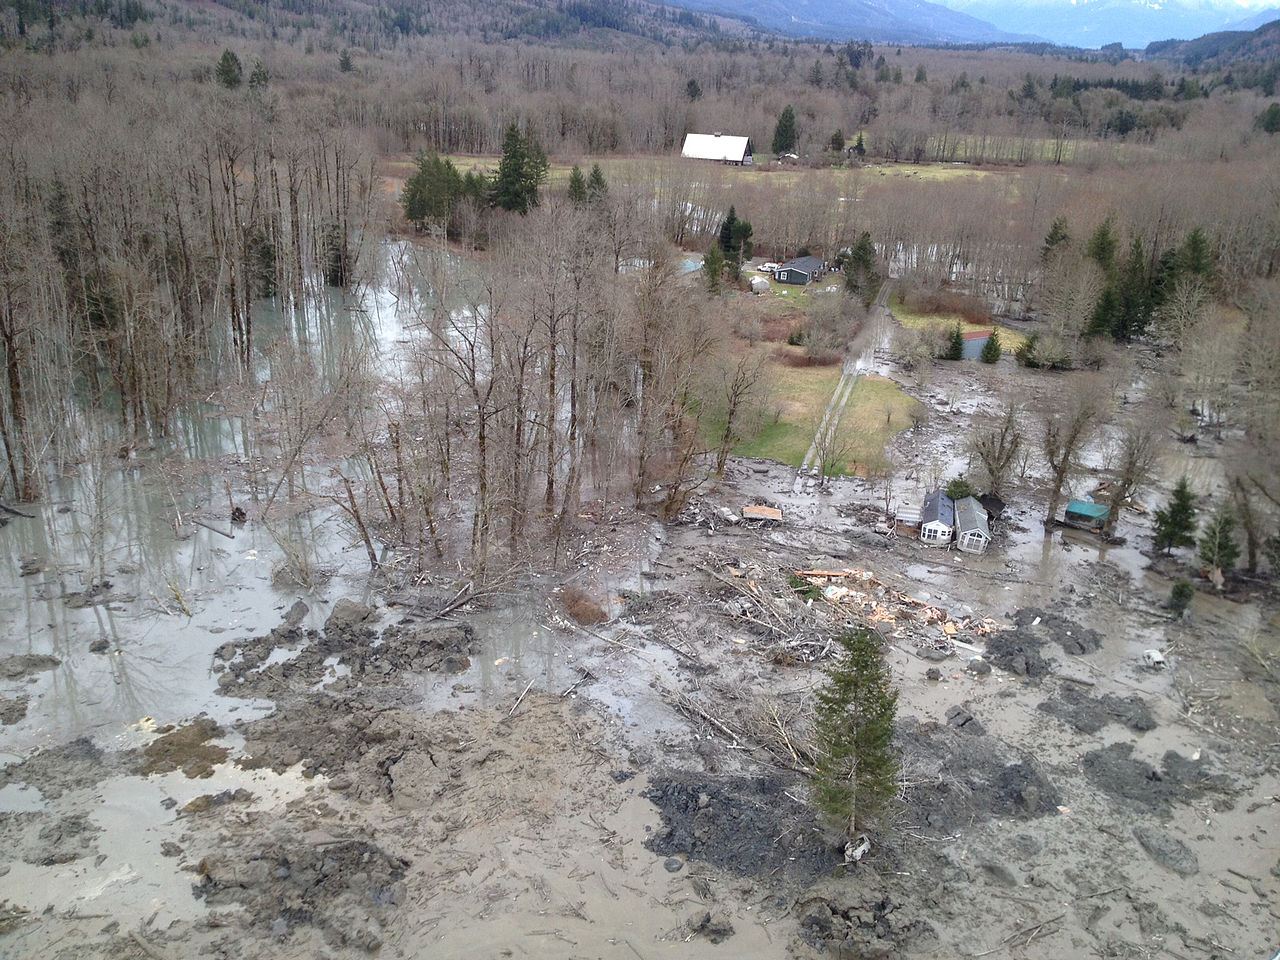 Stillaguamish Tribe disputes liability claim for deadly mudslide in 2014